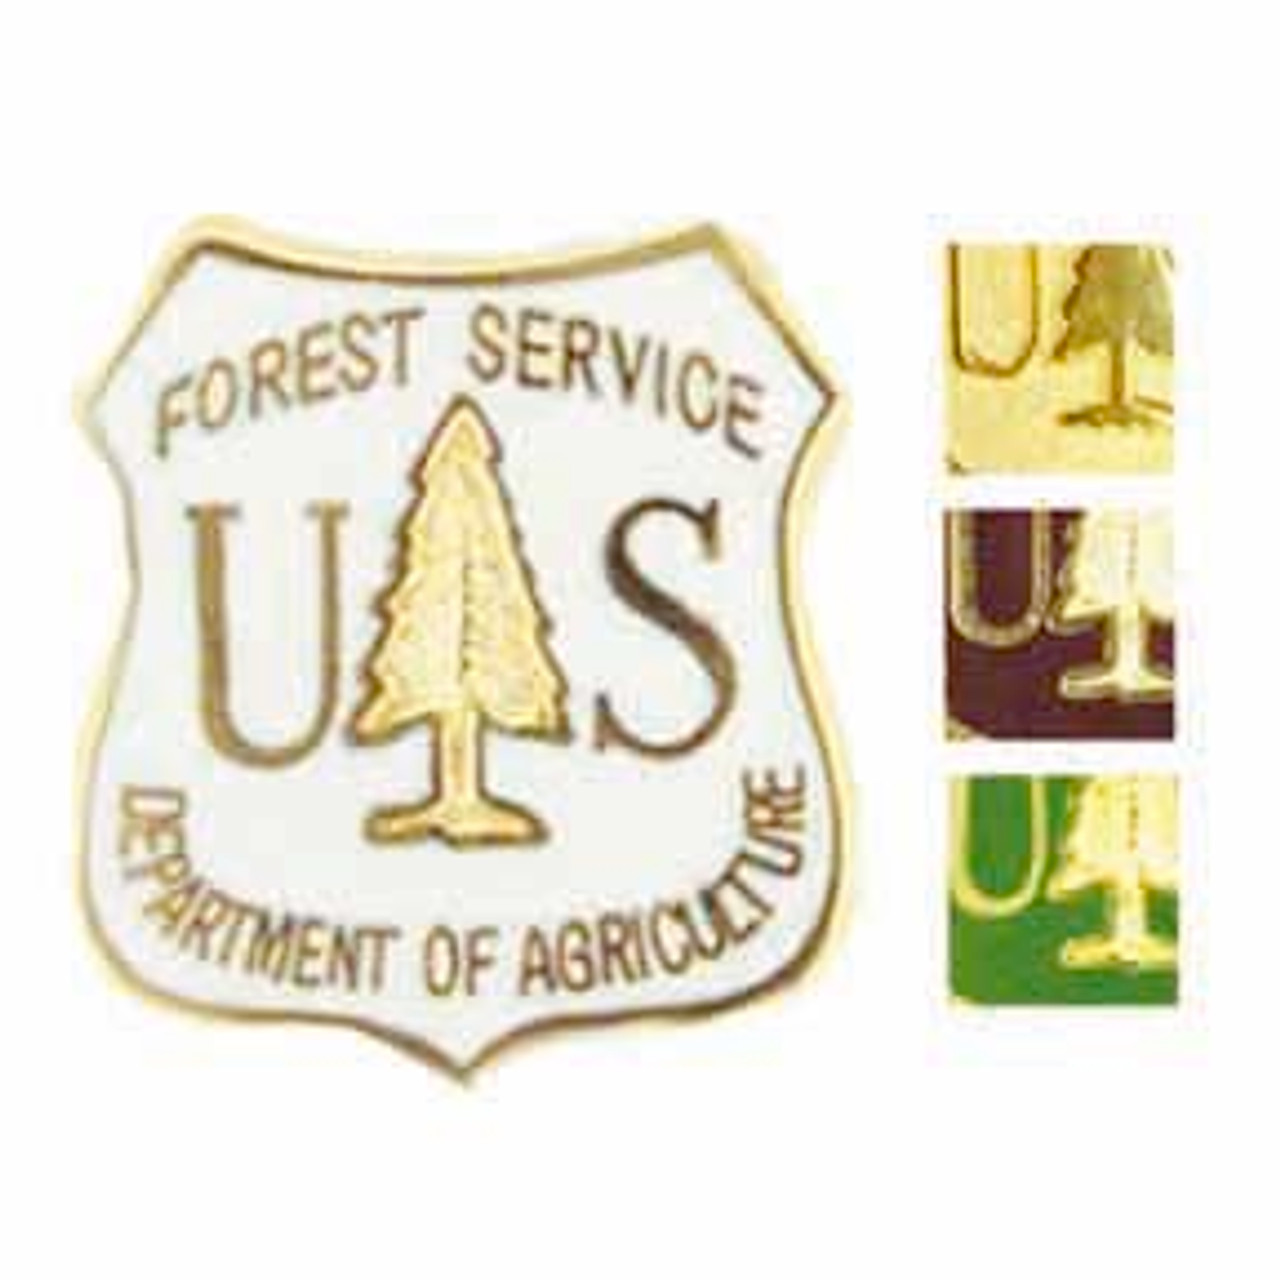 US Forest Service Shield Pin - Green